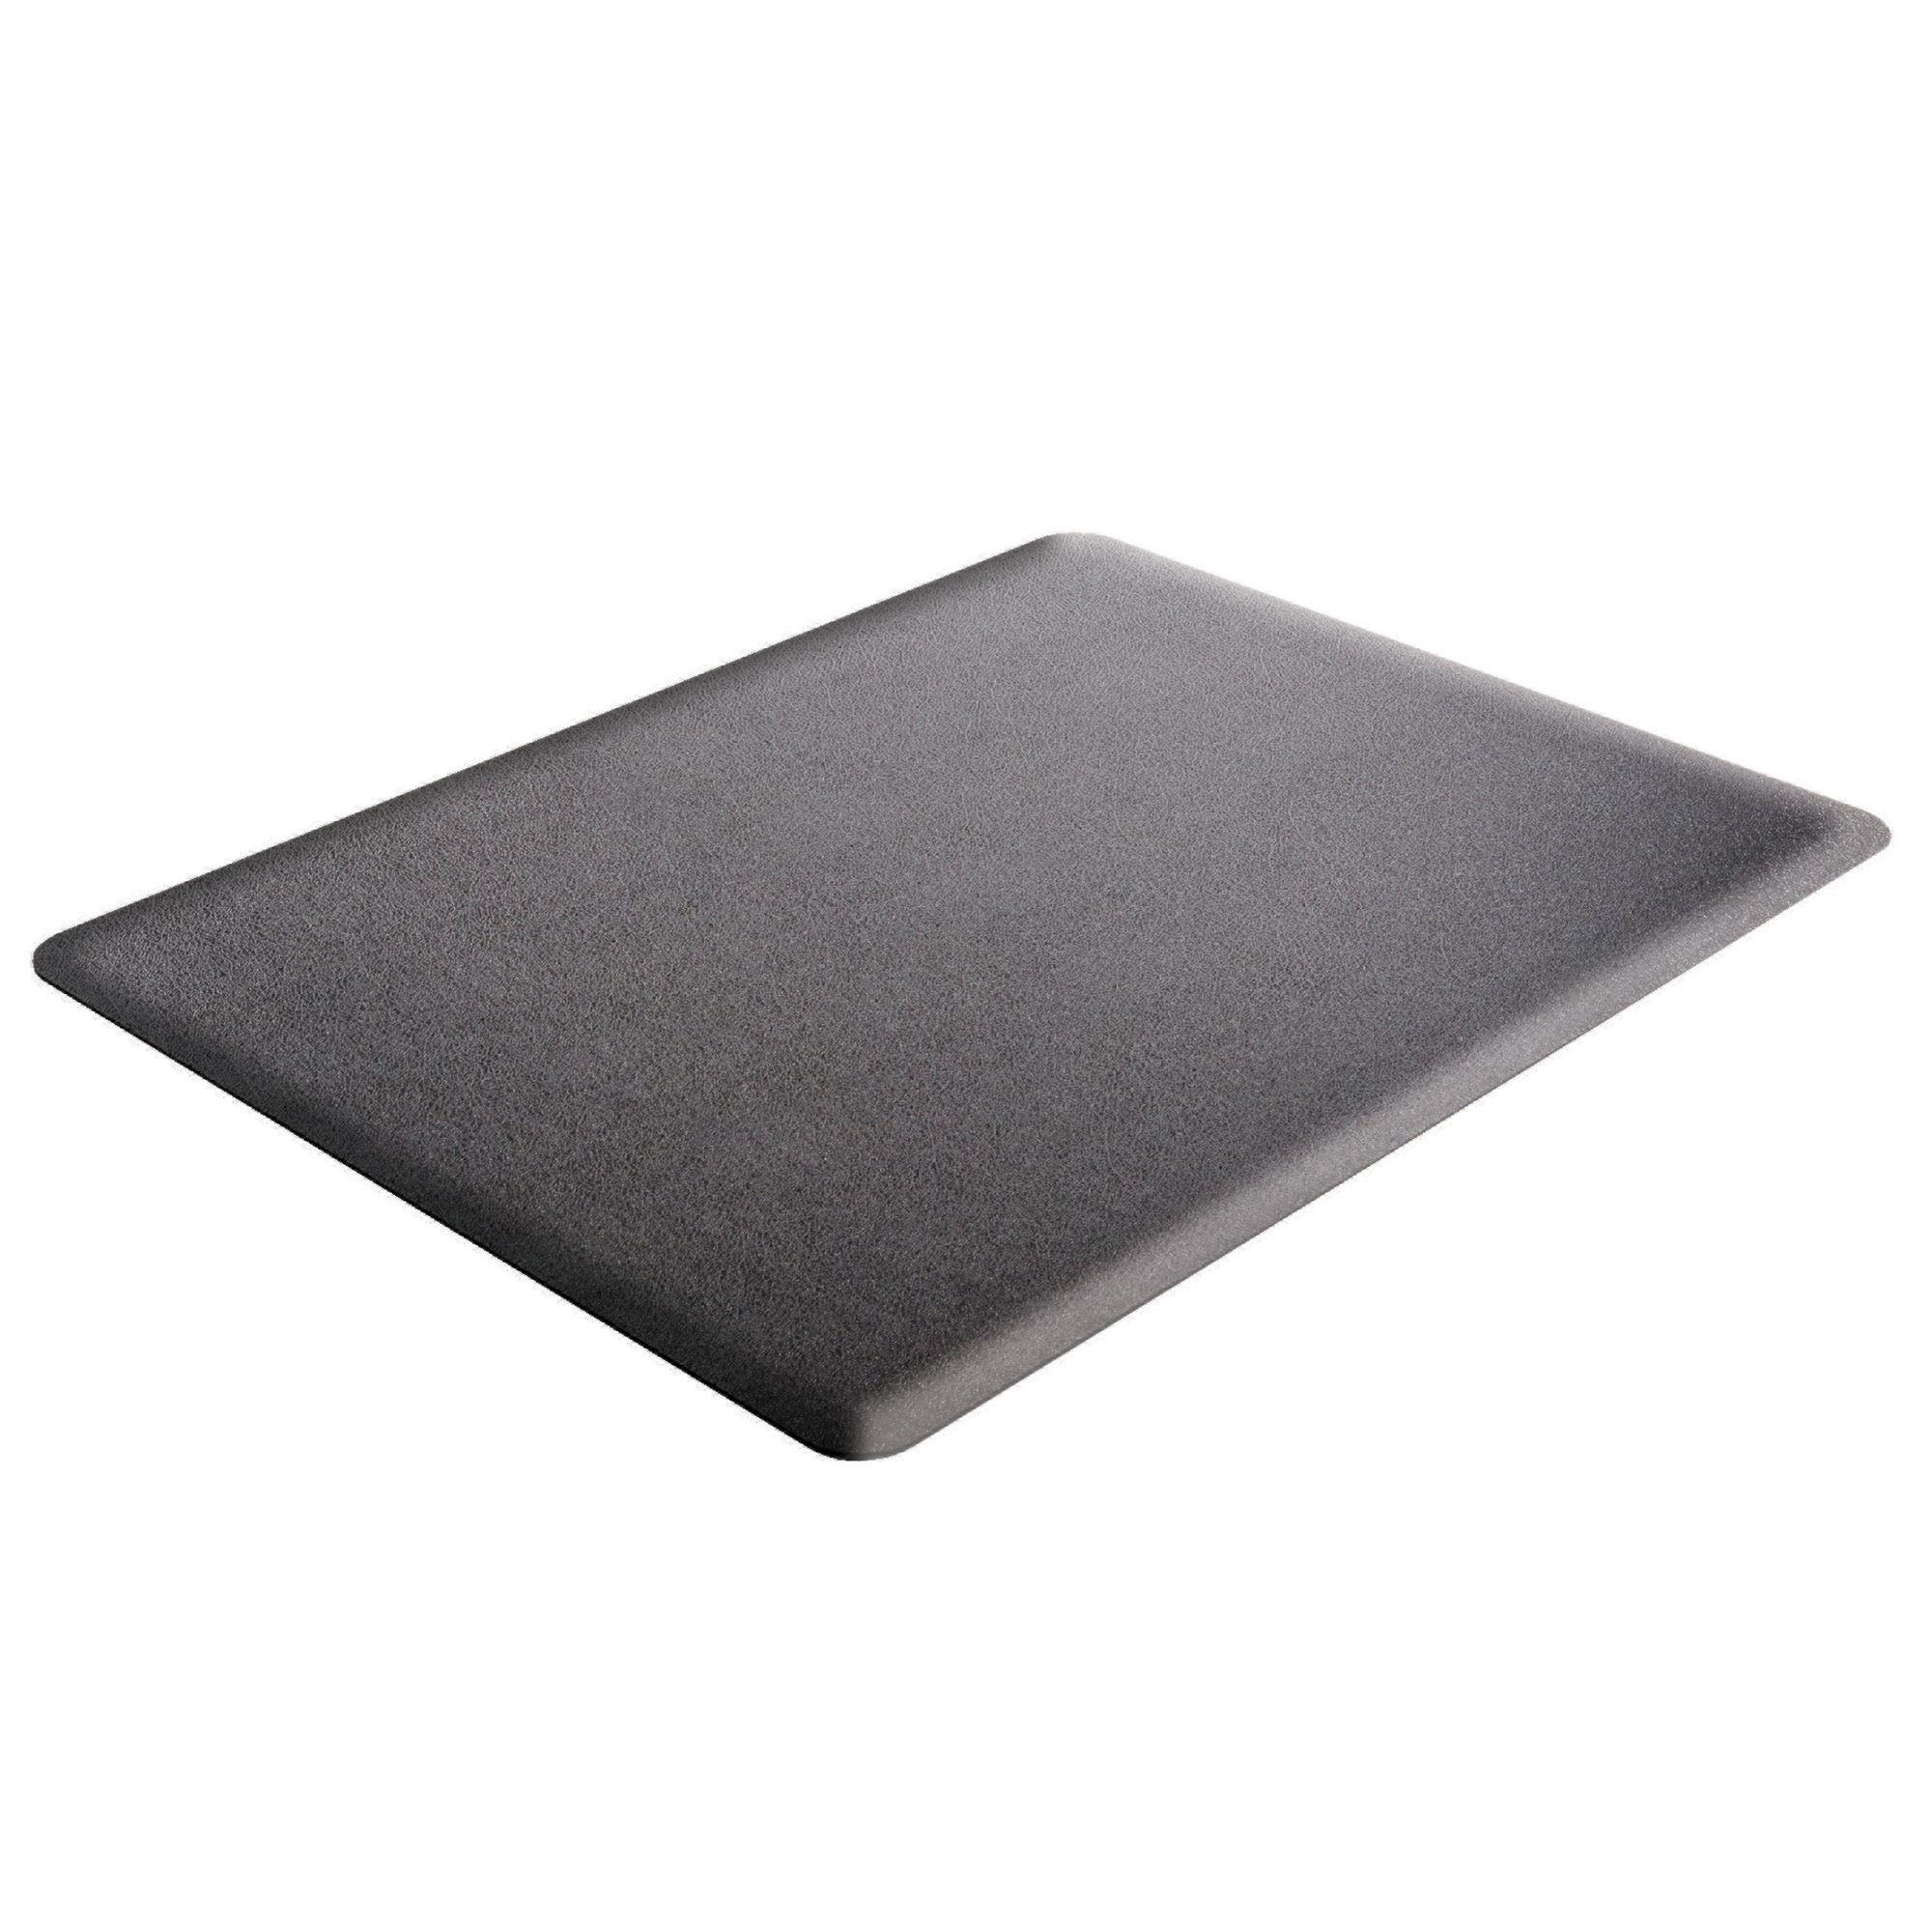 Deflecto Ergonomic Sit and Stand Black Chair Mat, Low Pile Carpet and Hard Floors, Rectangle, 46'' x 60'', Black